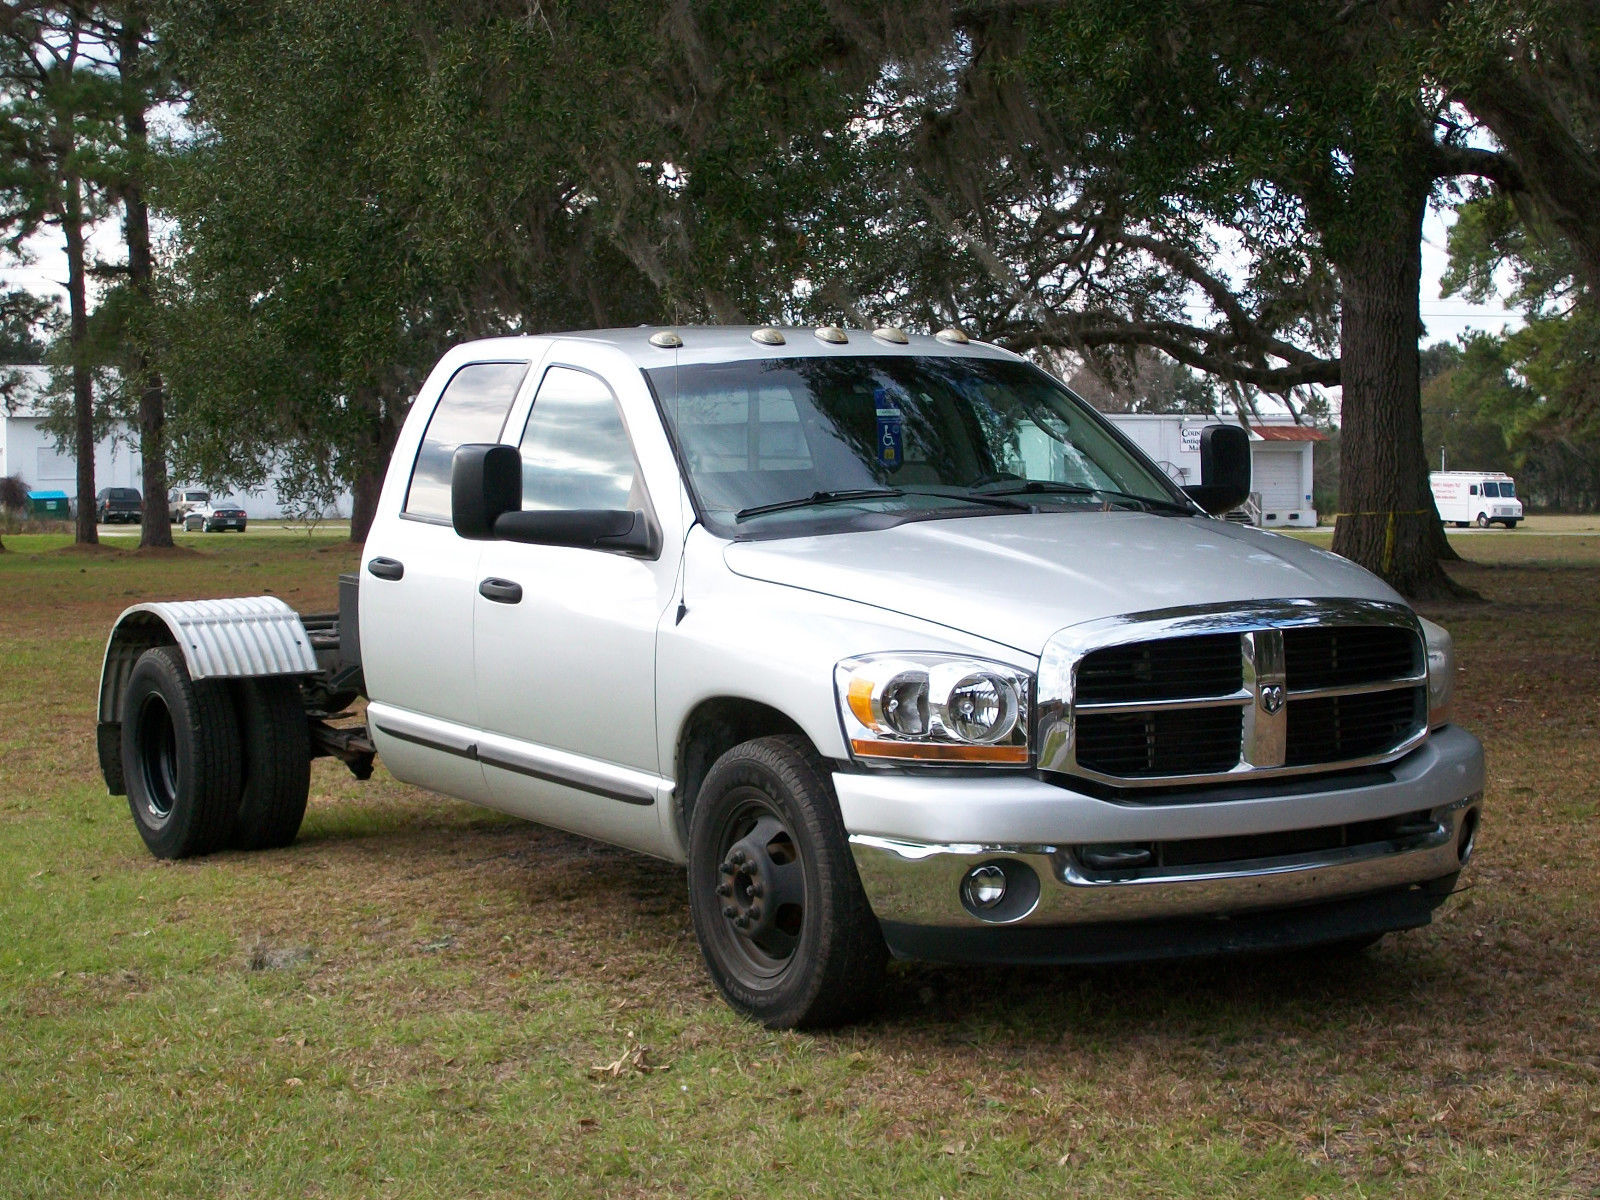 2006 dodge ram 3500 crew cab 5 9 diesel tow monster for sale. Black Bedroom Furniture Sets. Home Design Ideas